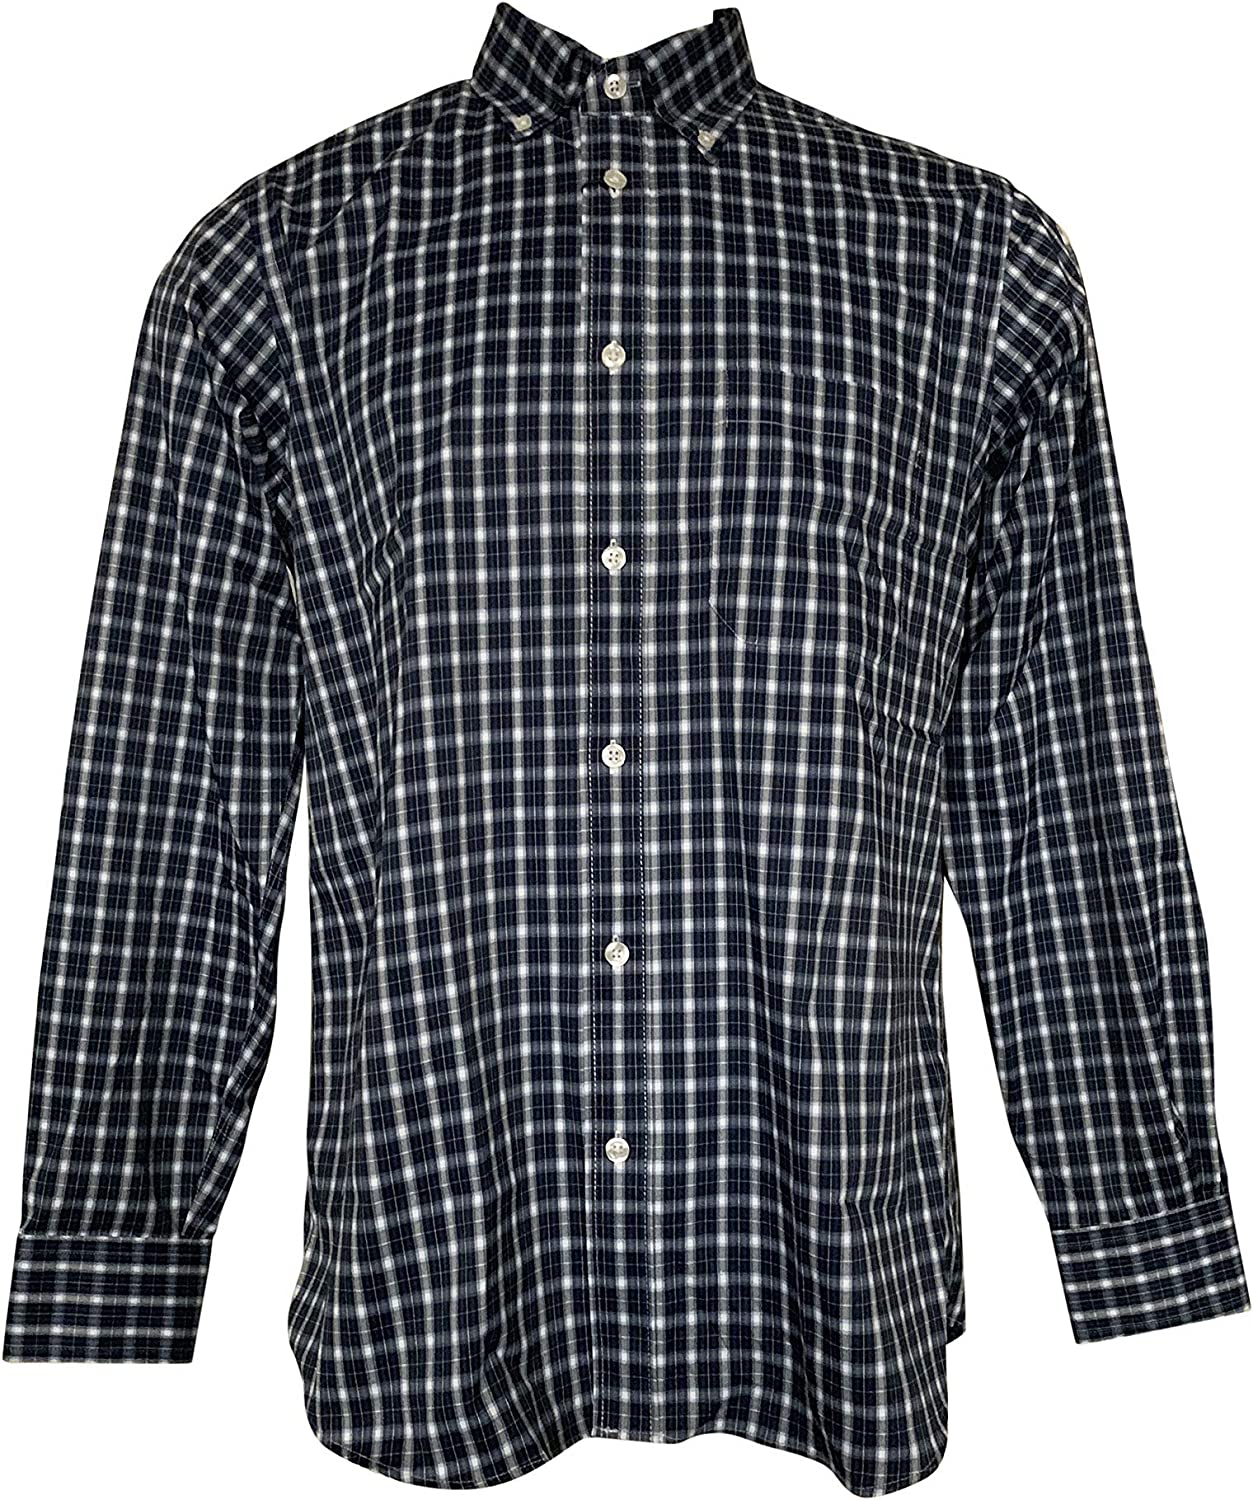 Free shipping Free Shipping Cheap Bargain Gift Nautica Men's Performance Active Wrinkl Stretch Long-Sleeve